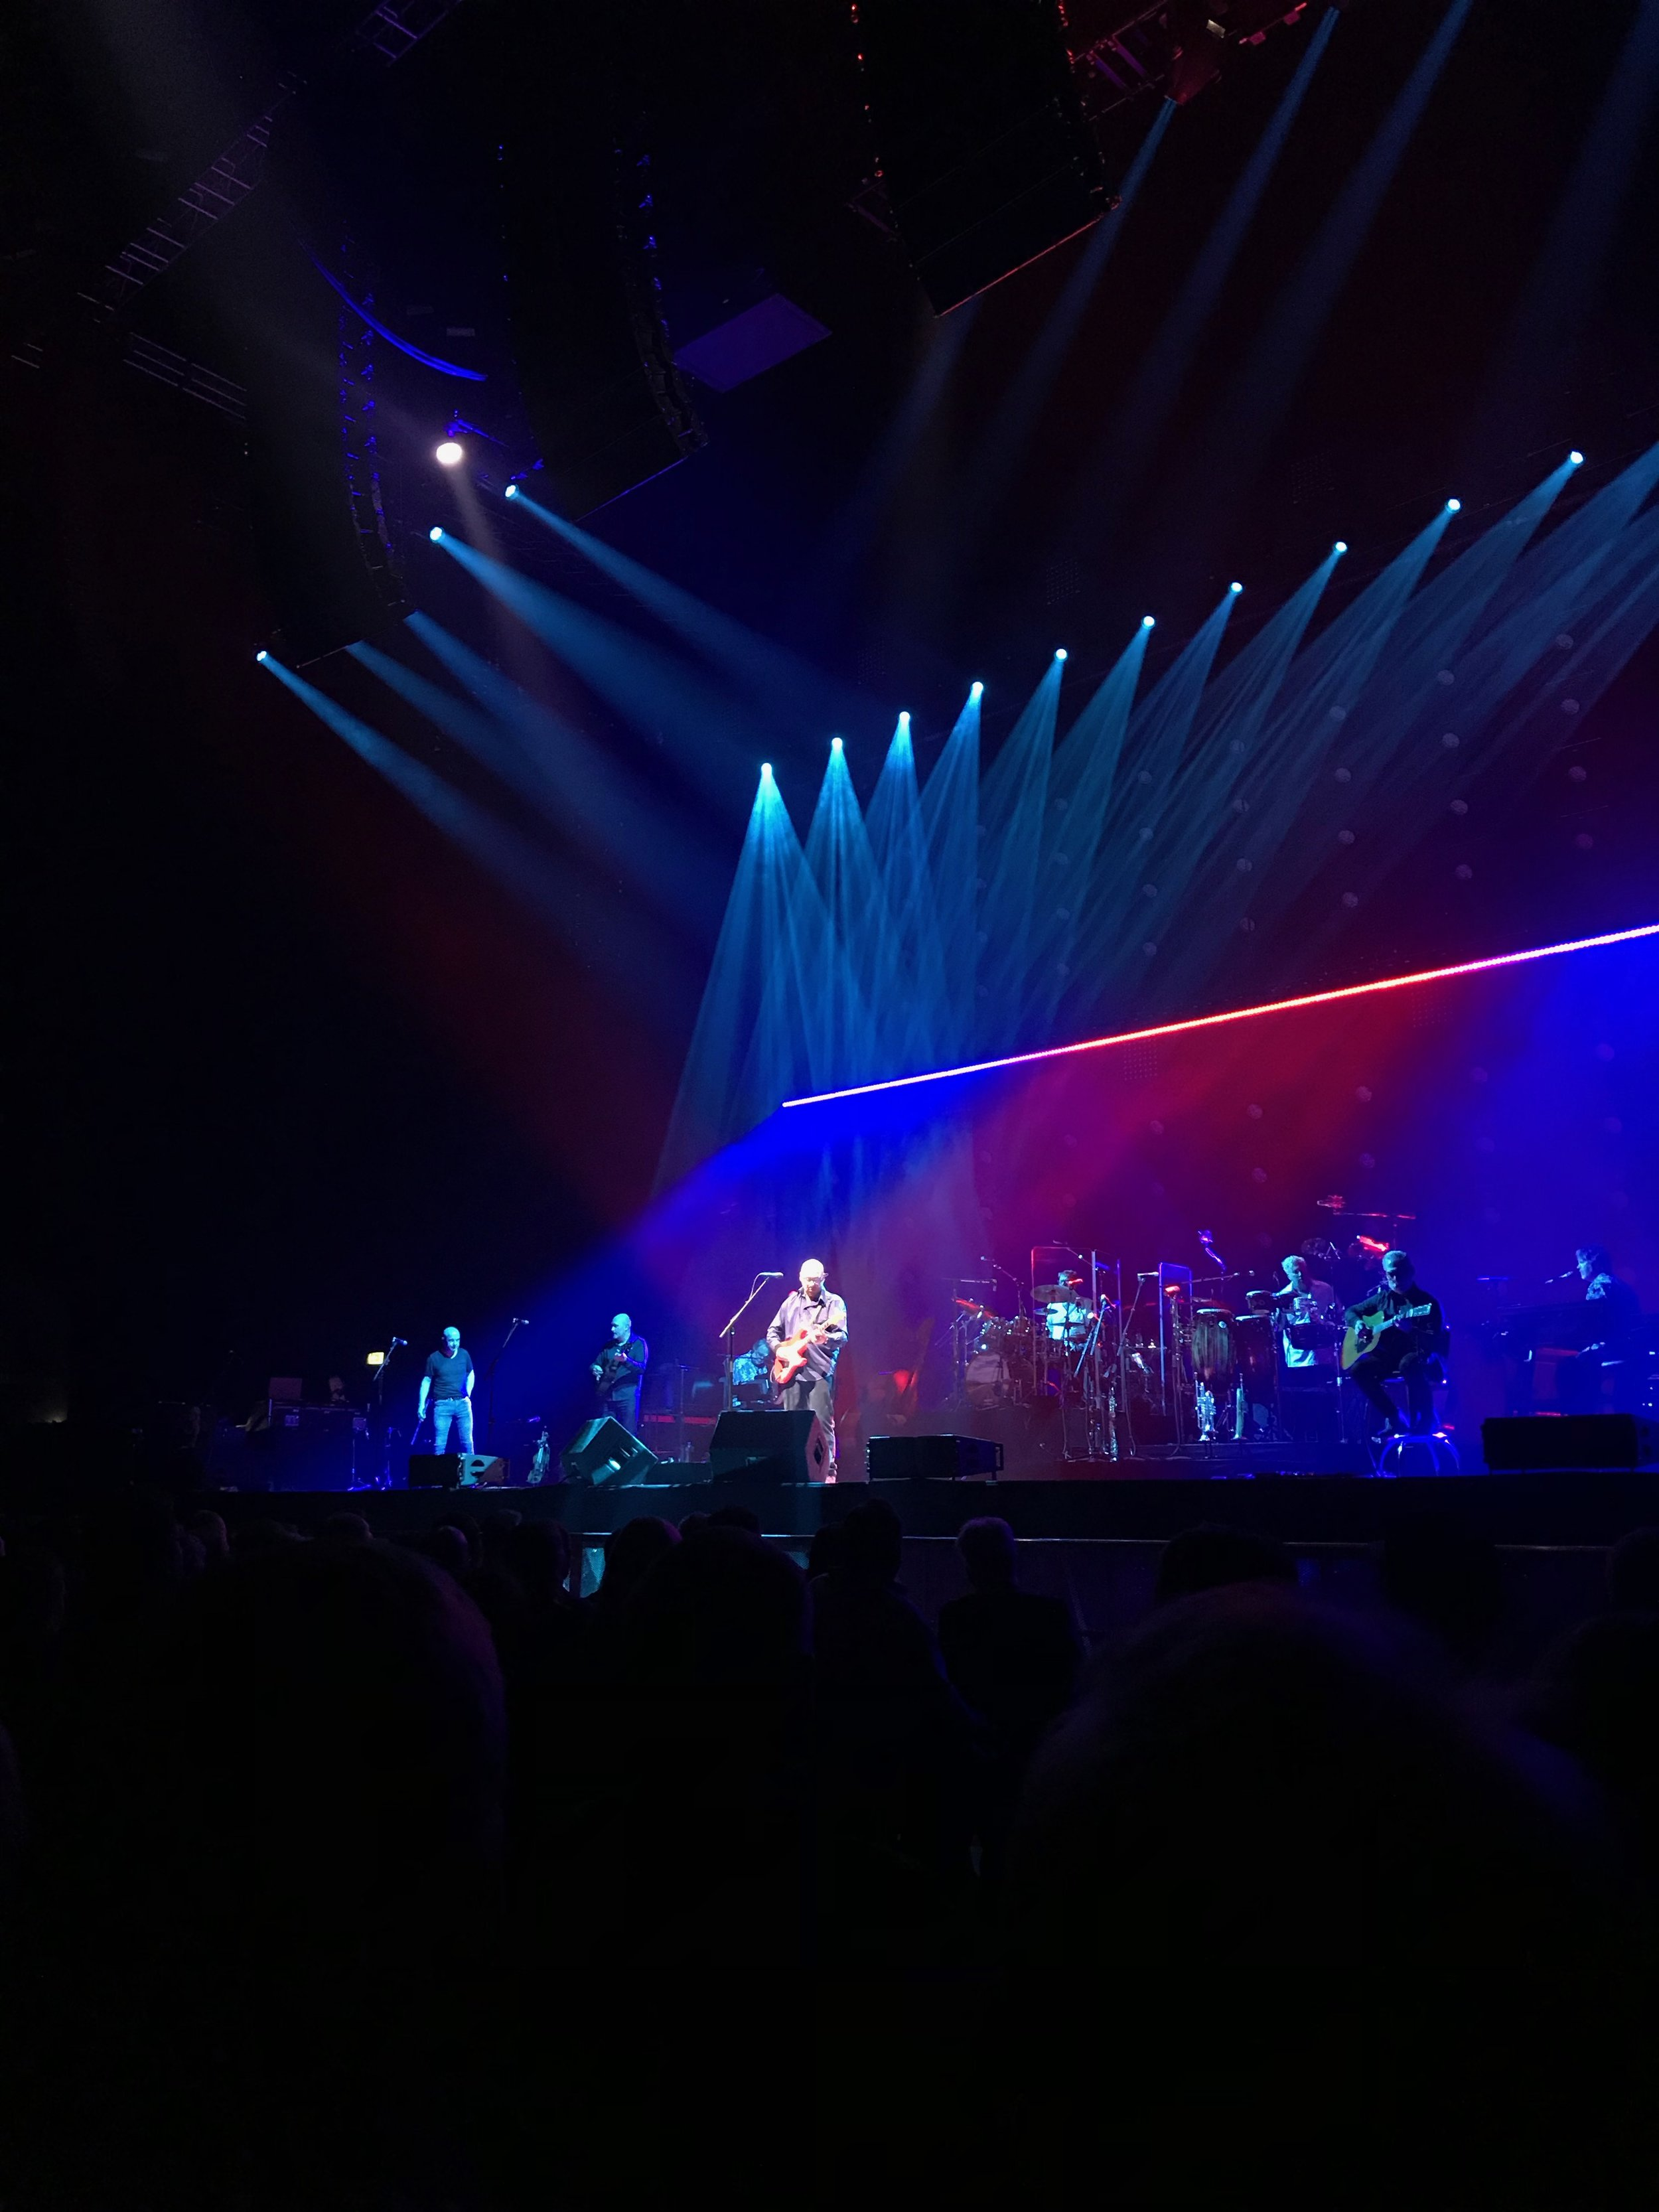 Mark Knopfler getting up under those coloured lights to do his thing..